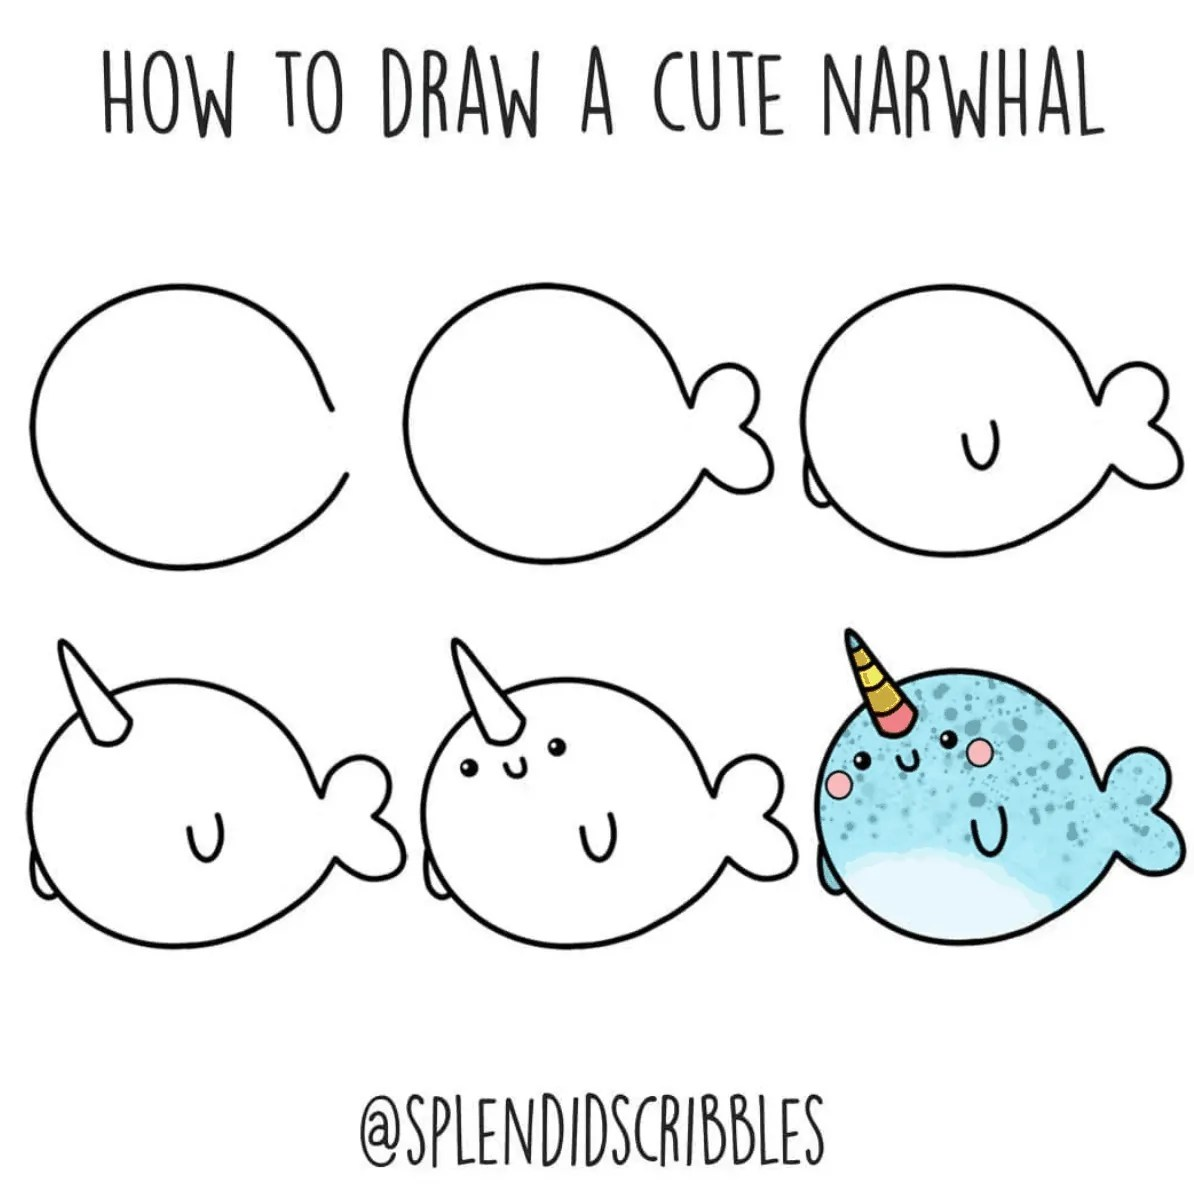 how-to-draw-21.39.12 5